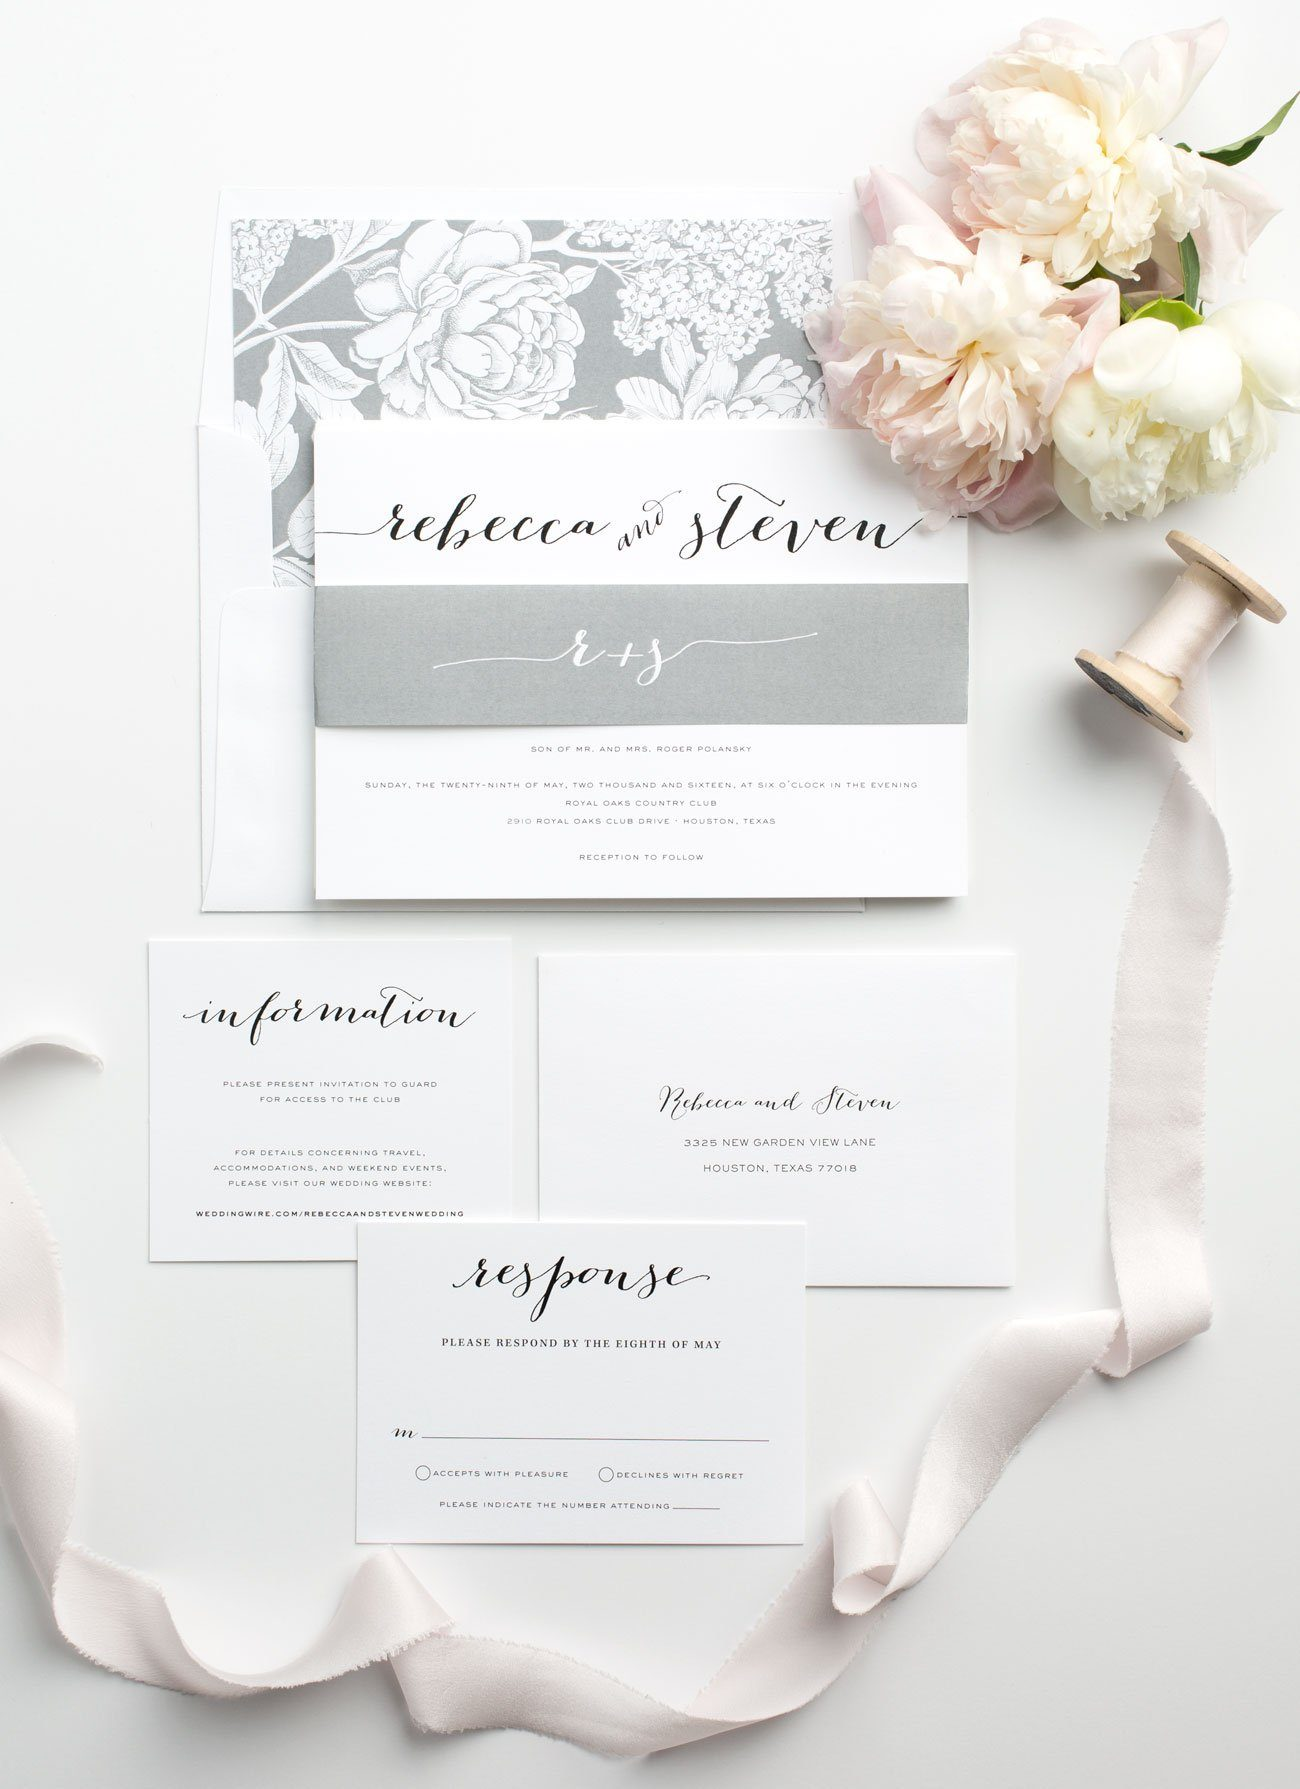 Script Wedding Invitations in Gray – Wedding Invitations